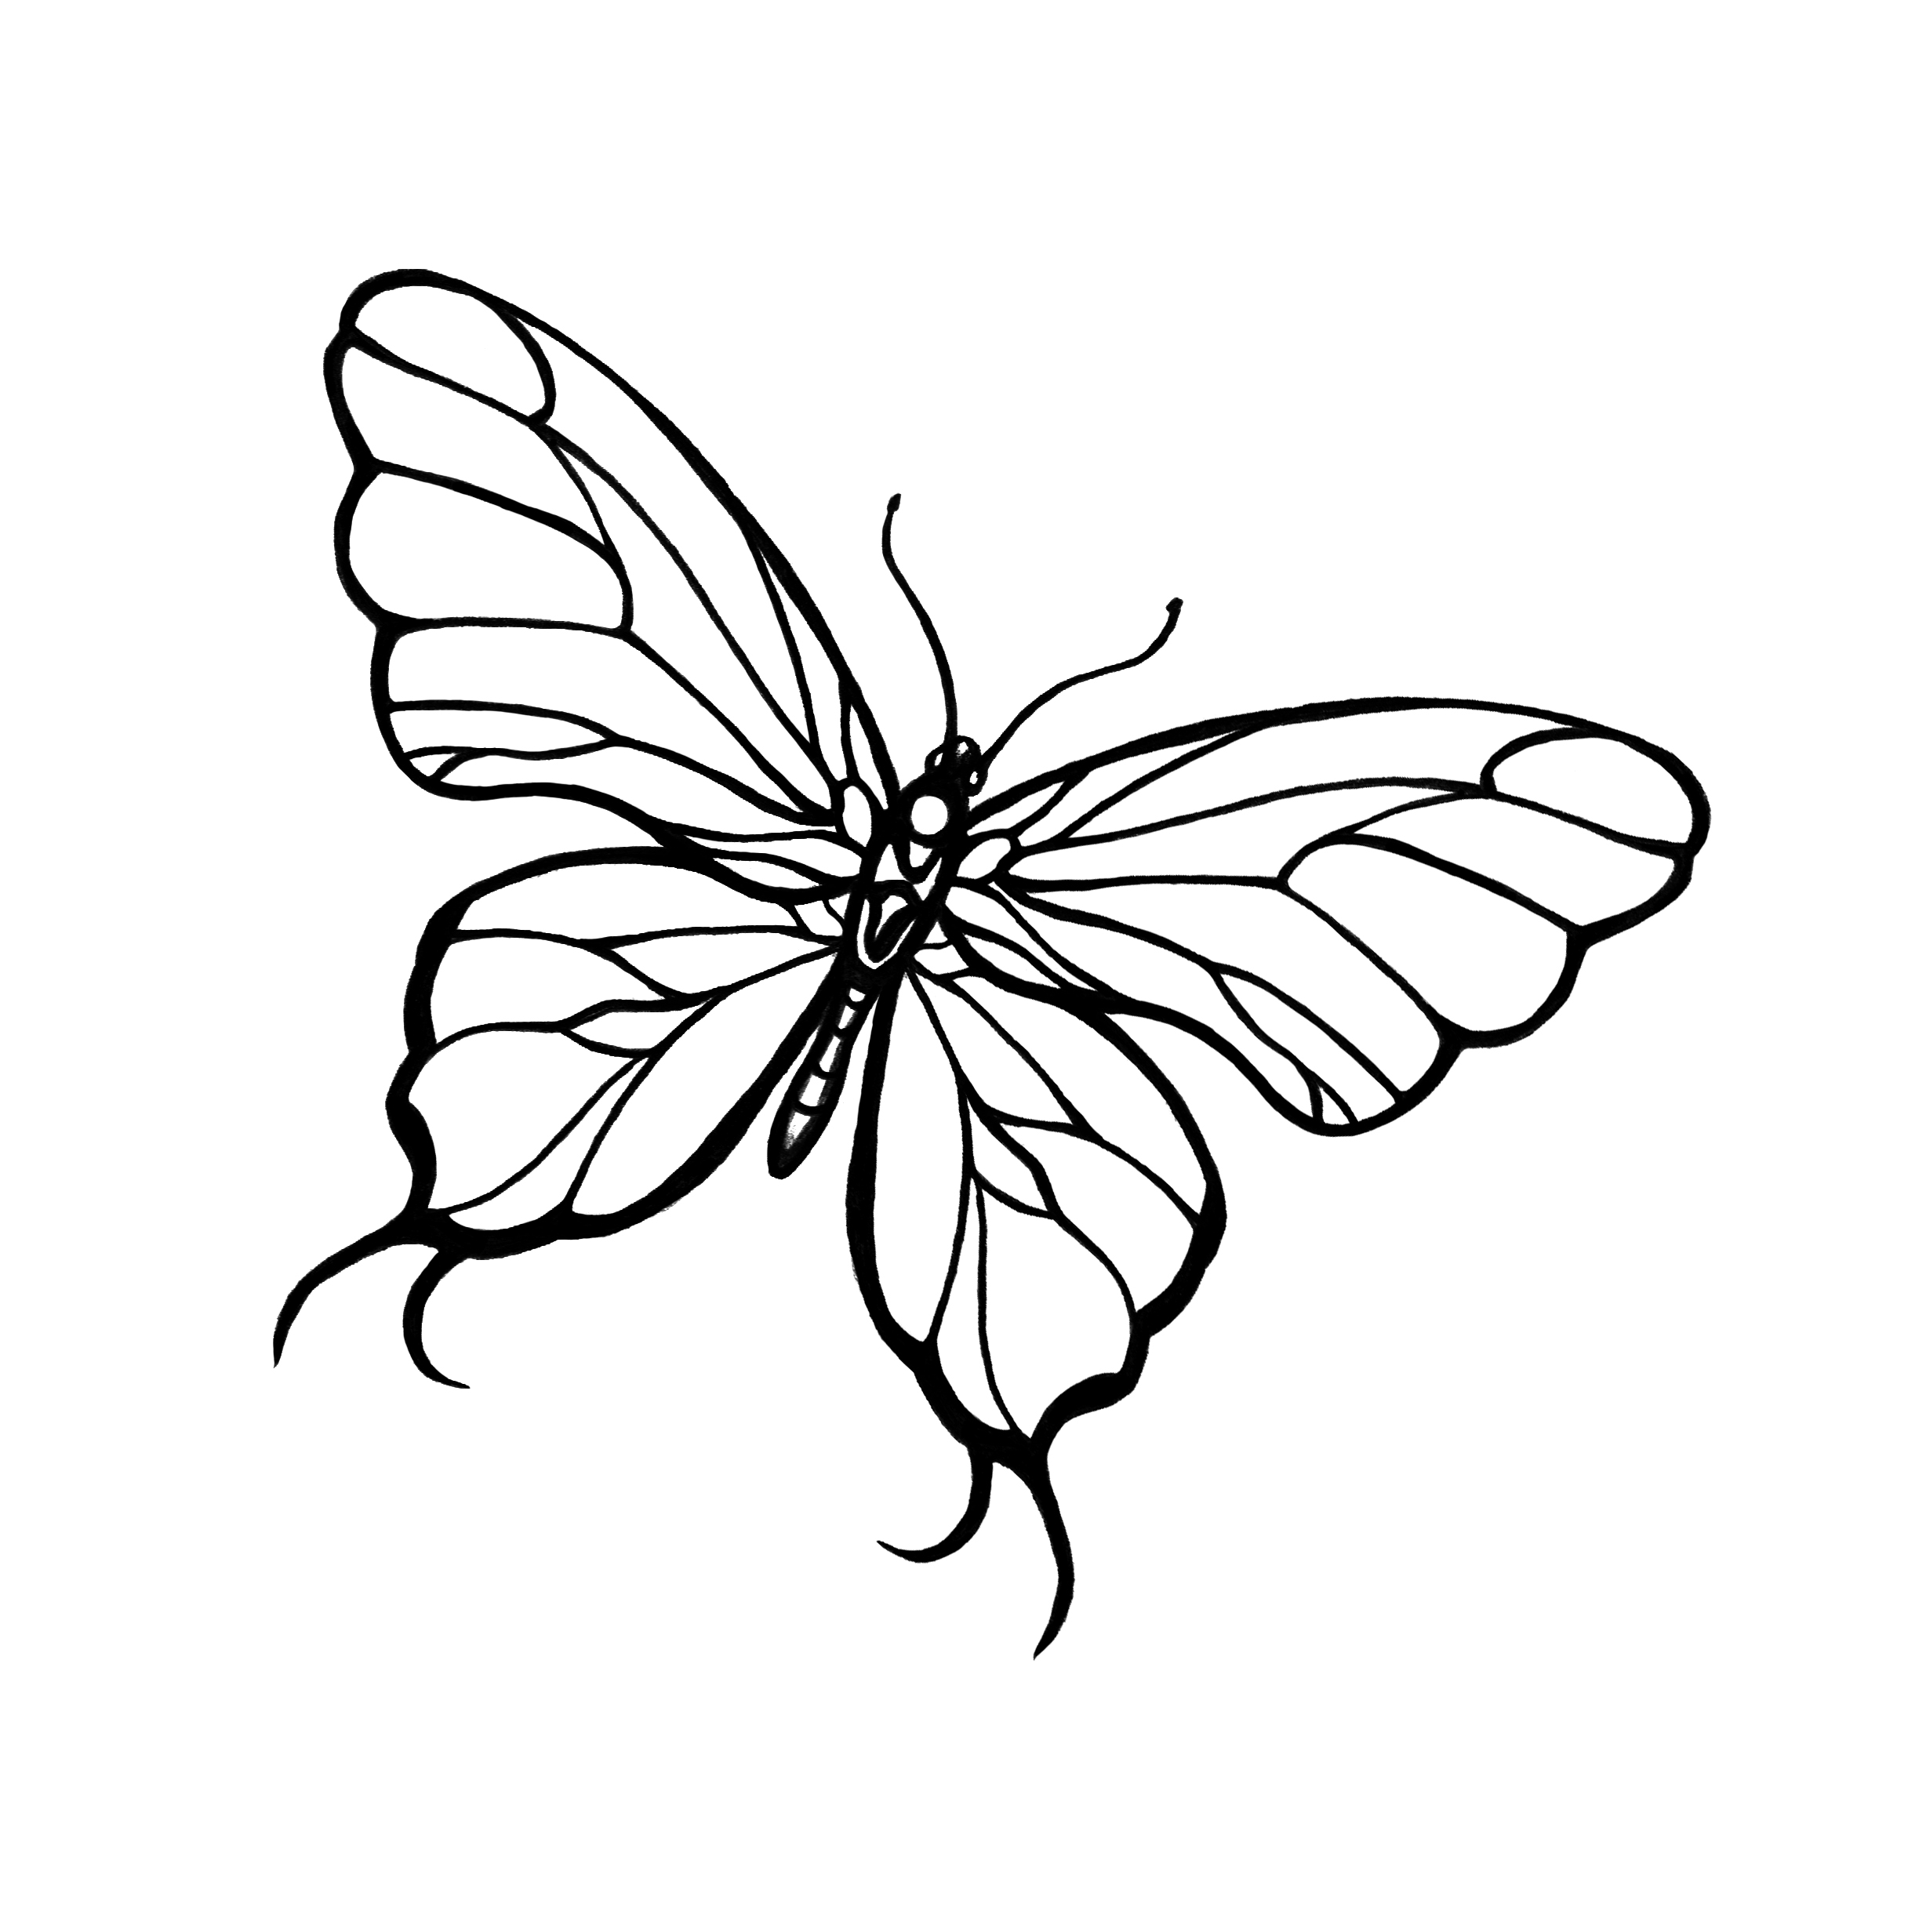 Line Drawing Butterfly Tattoo : Simple black line butterfly tattoo design tattooimages